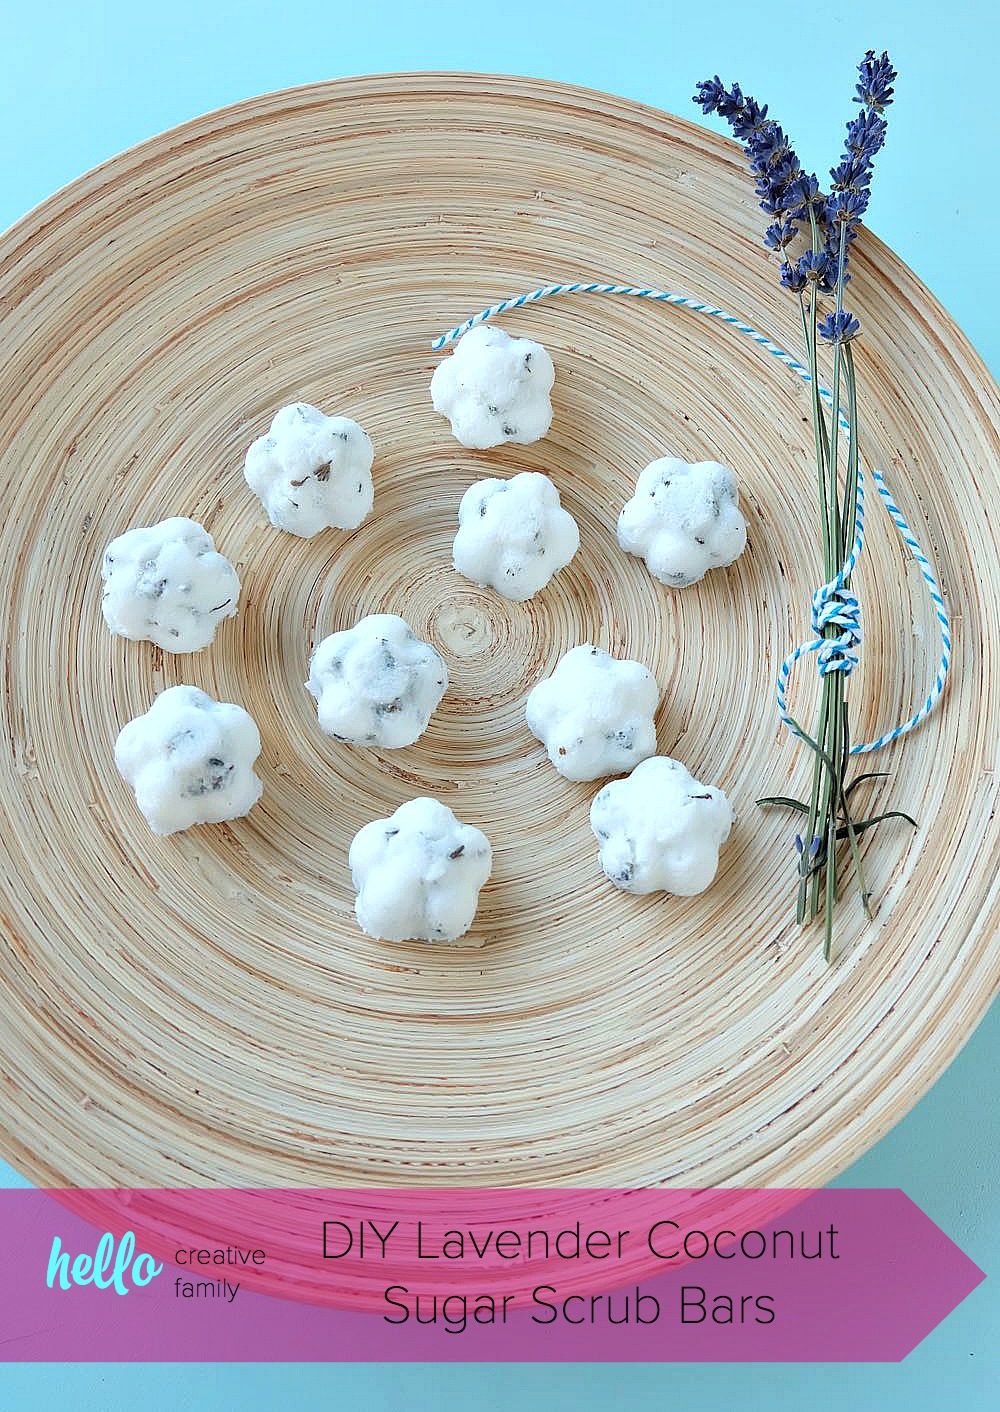 Making DIY body products at home is so much fun. Here is an easy project to get you started! These DIY Coconut Lavender Sugar Scrub Bars use shea butter melt and pour soap as their base. Perfect for exfoliating in the shower, or to use on feet and hands before a pedicure or manicure! Super simple to make and a fabulous handmade gift idea!